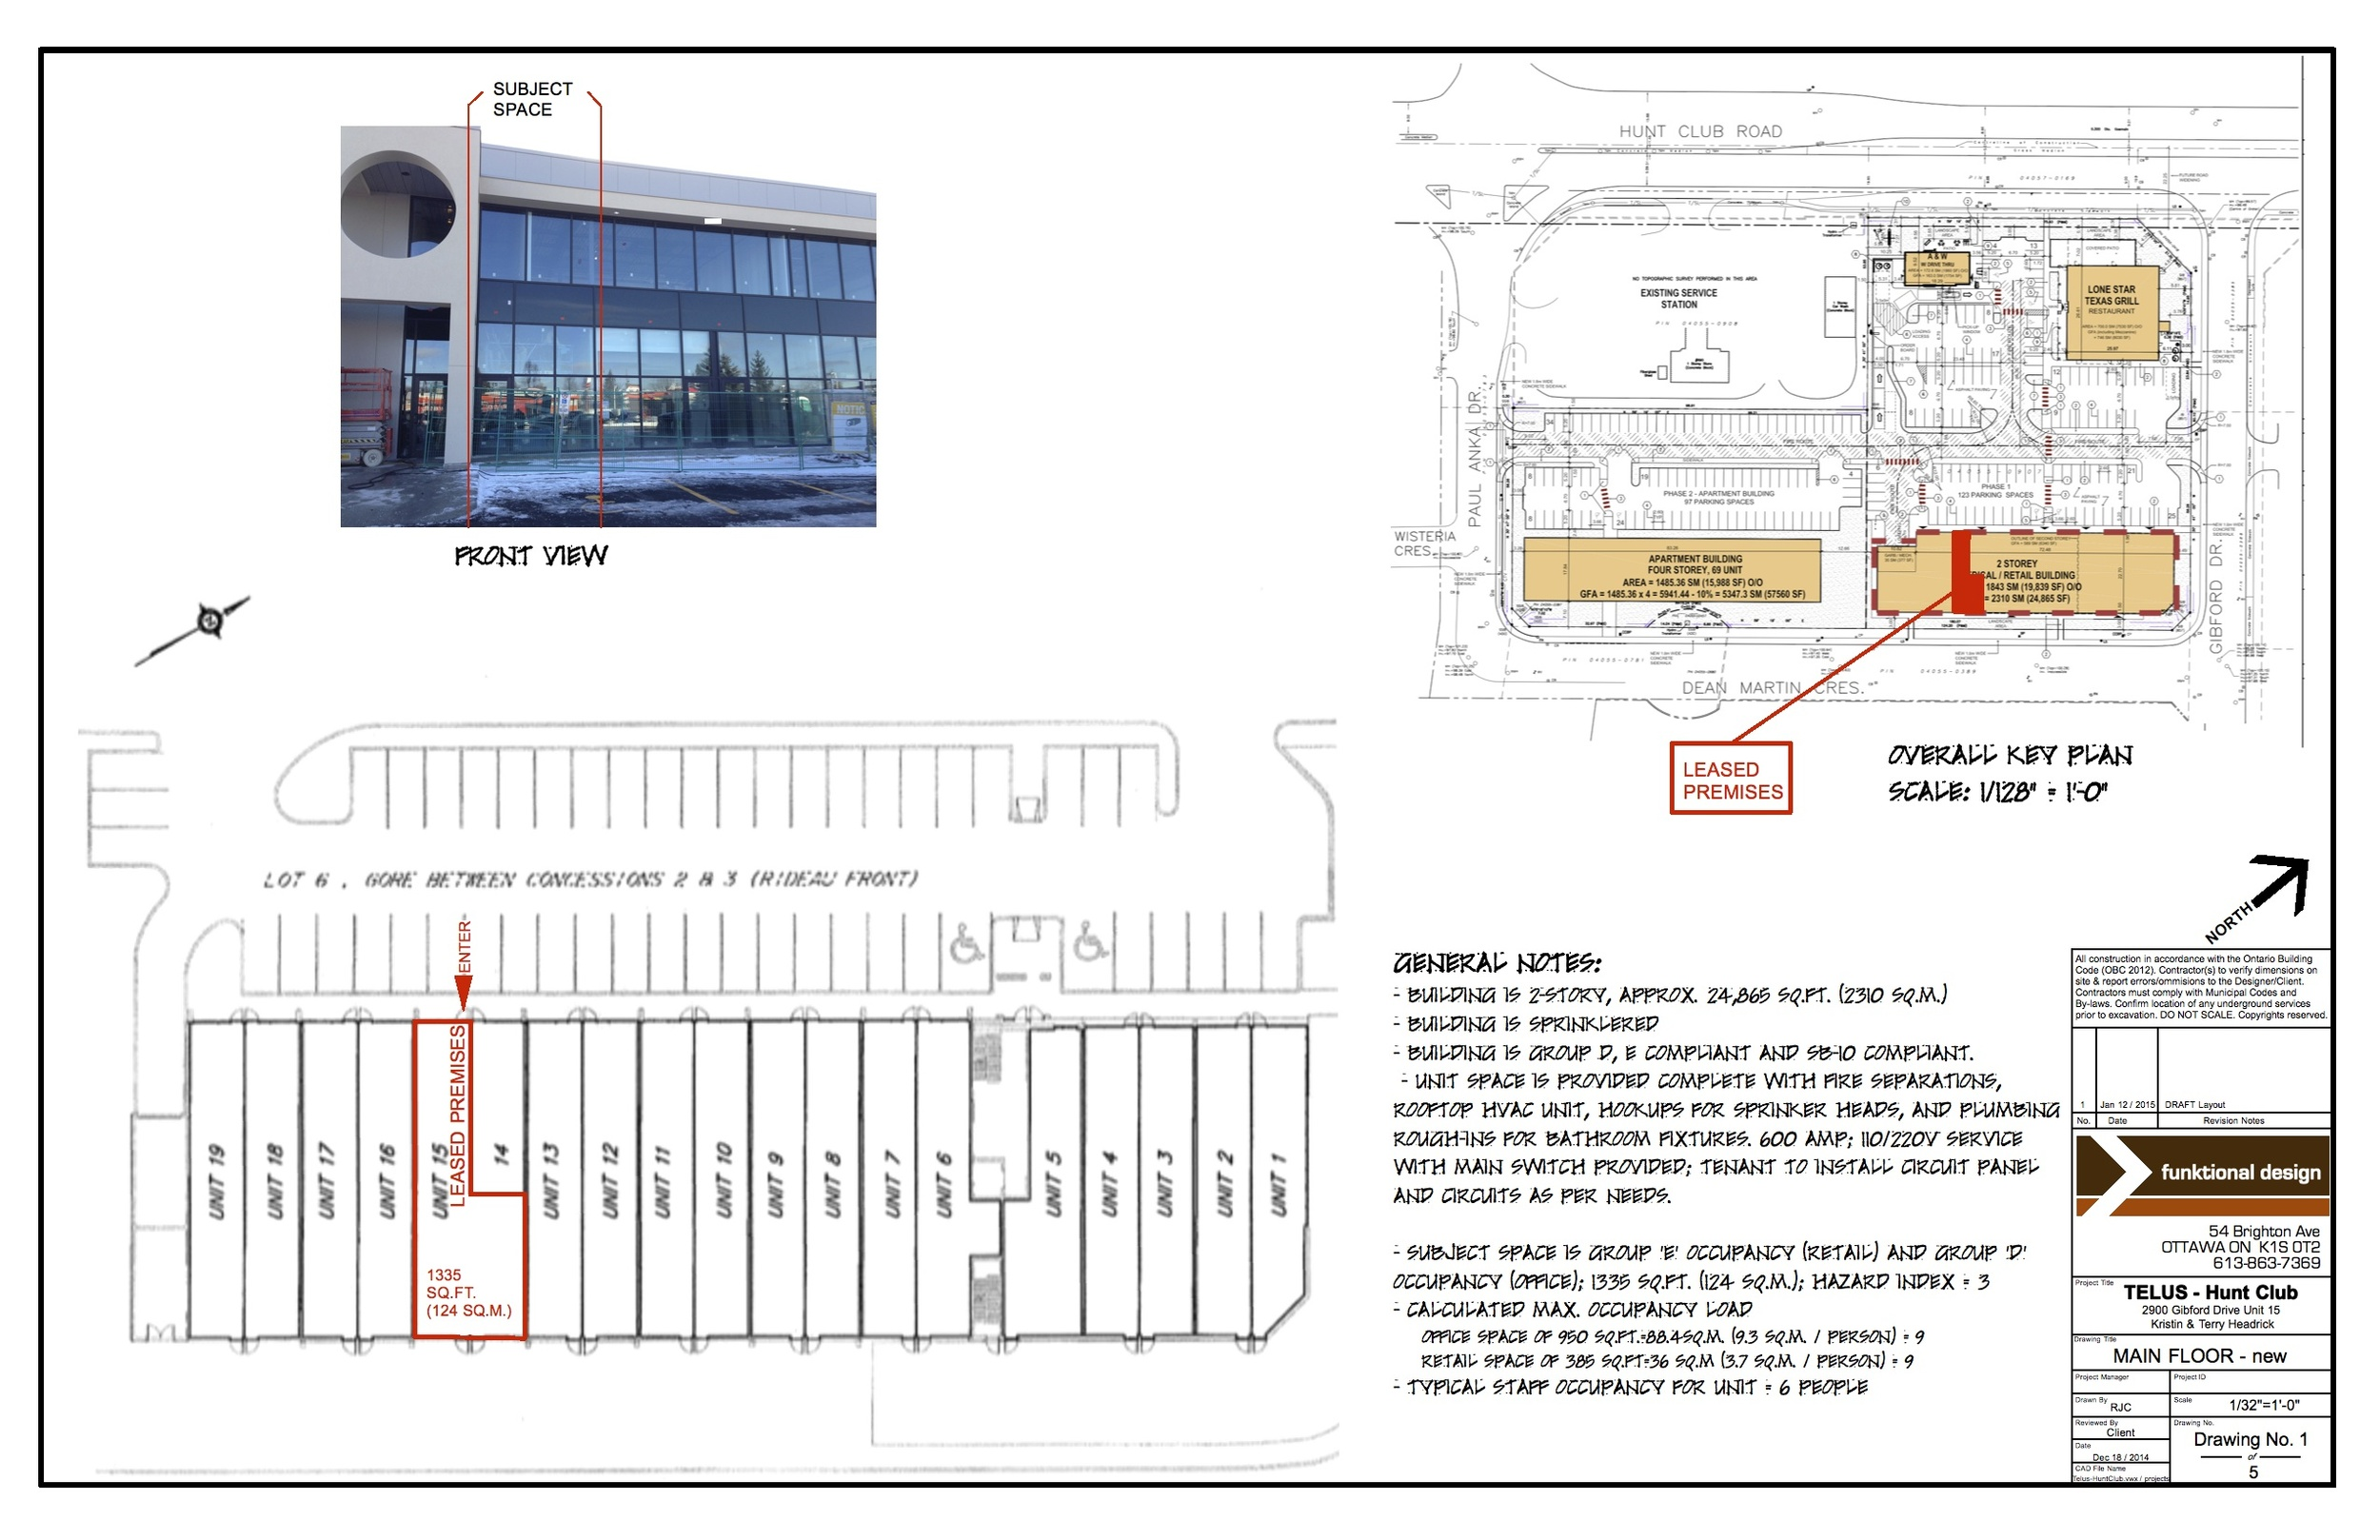 Site and Key plan